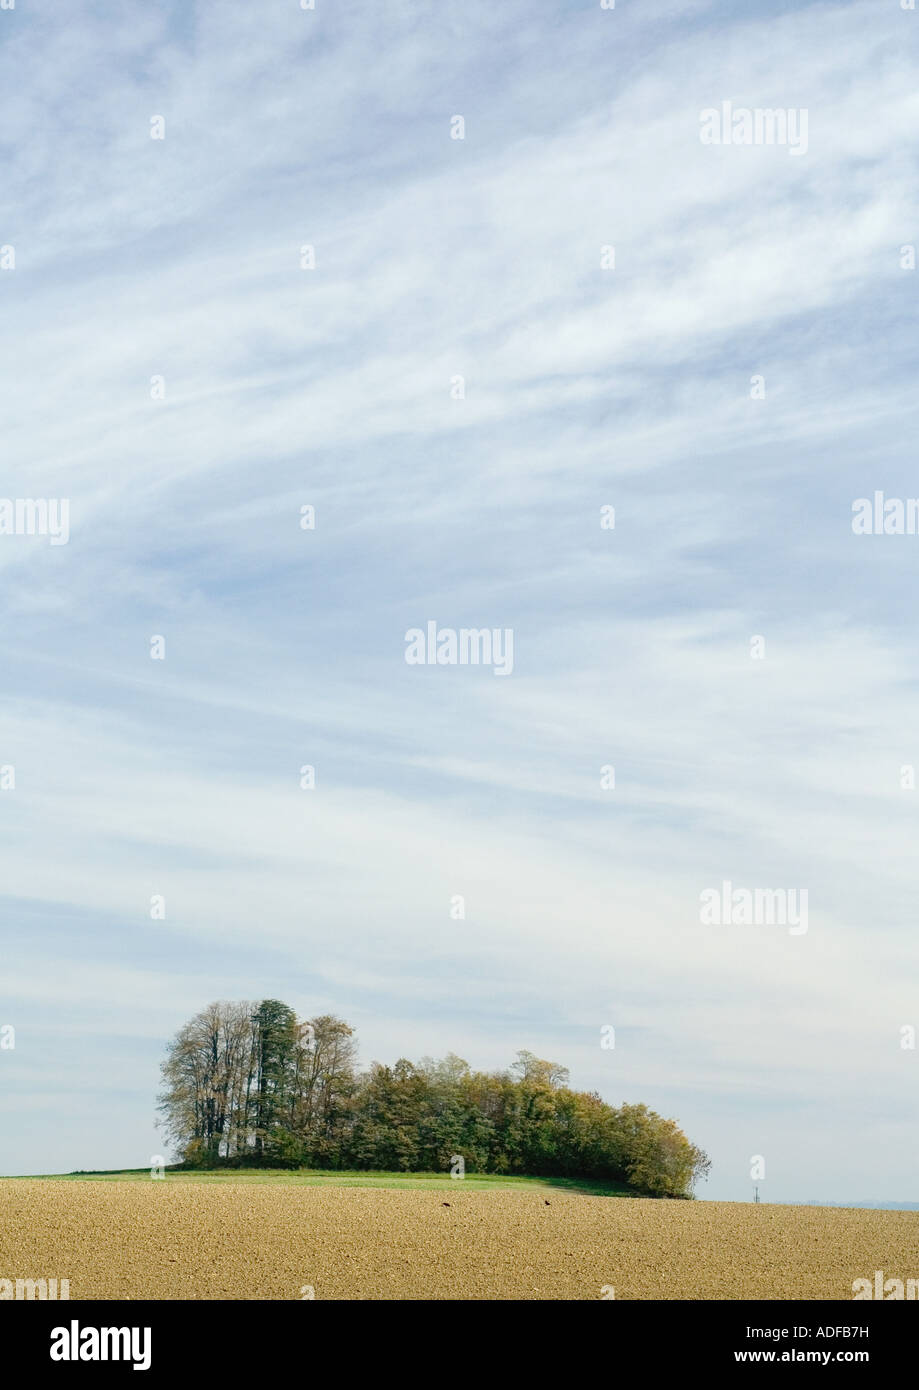 Bare field and grove of trees - Stock Image